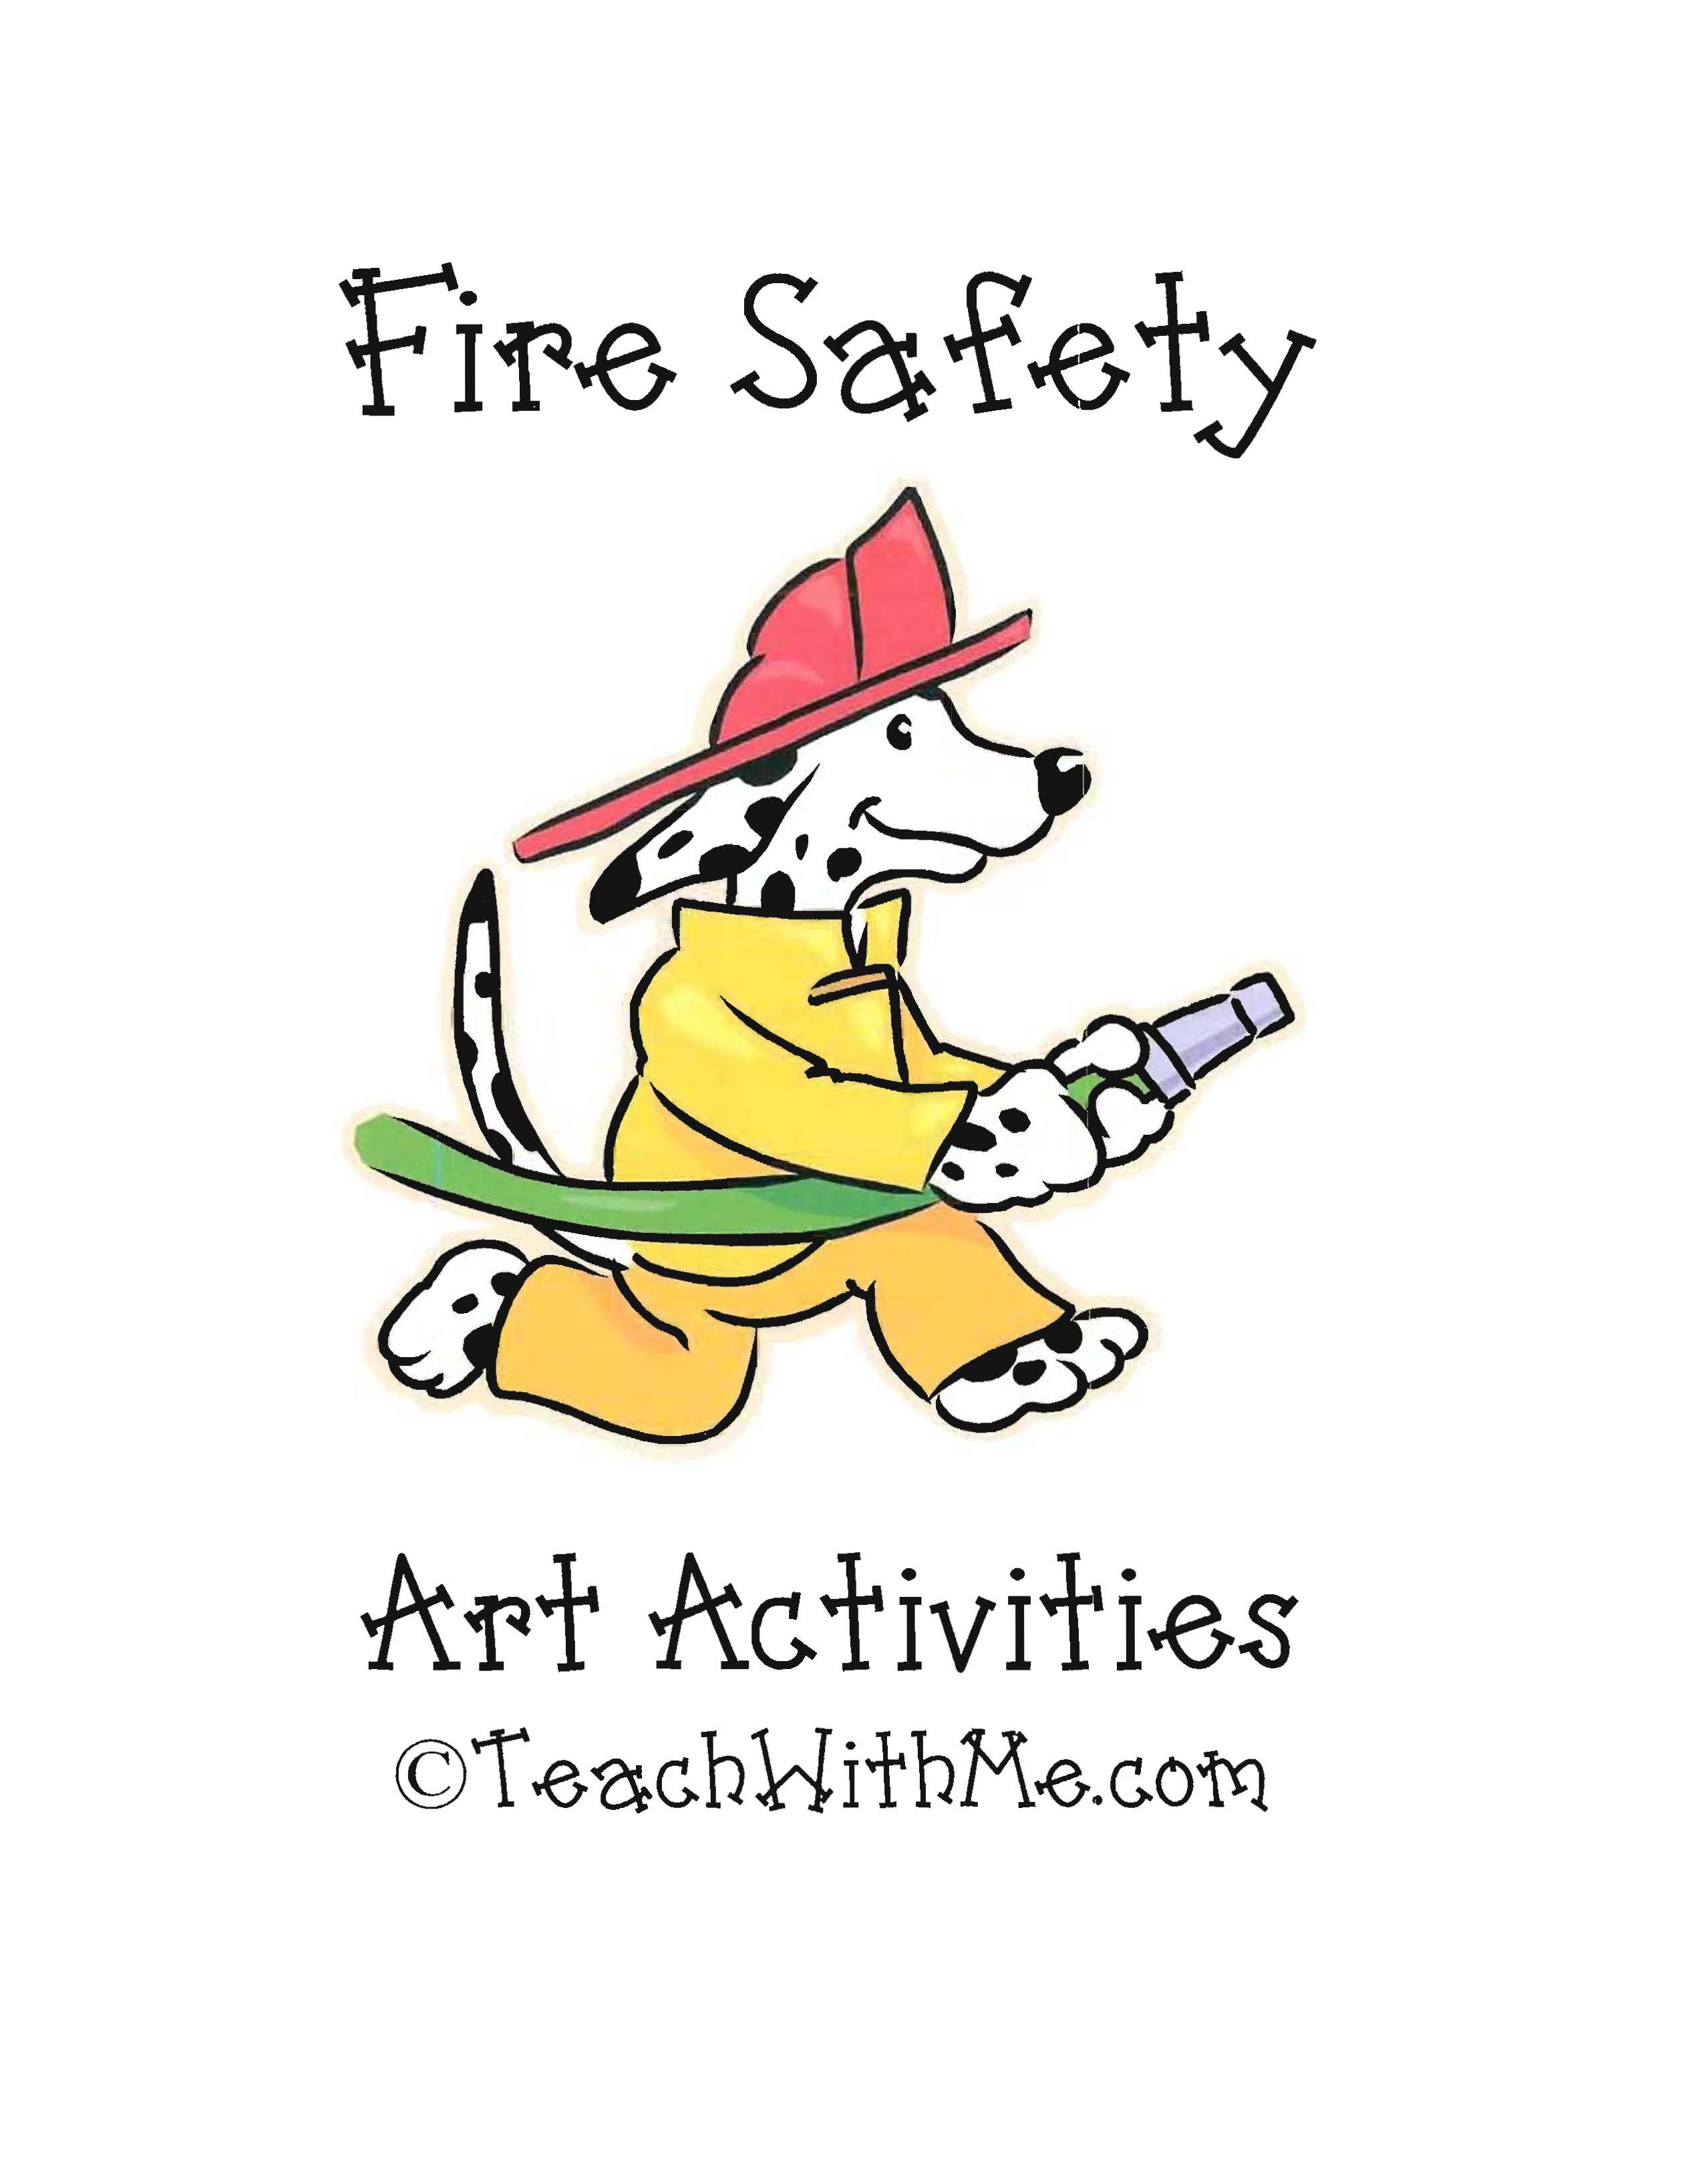 fire safety ideas, fire safety lessons, fire safety activities, arts and crafts for fire safety, fire safety crafts, common core fire safety, bibliography of fire safety books, fire safety bulletin board ideas, a list of fire safety books,